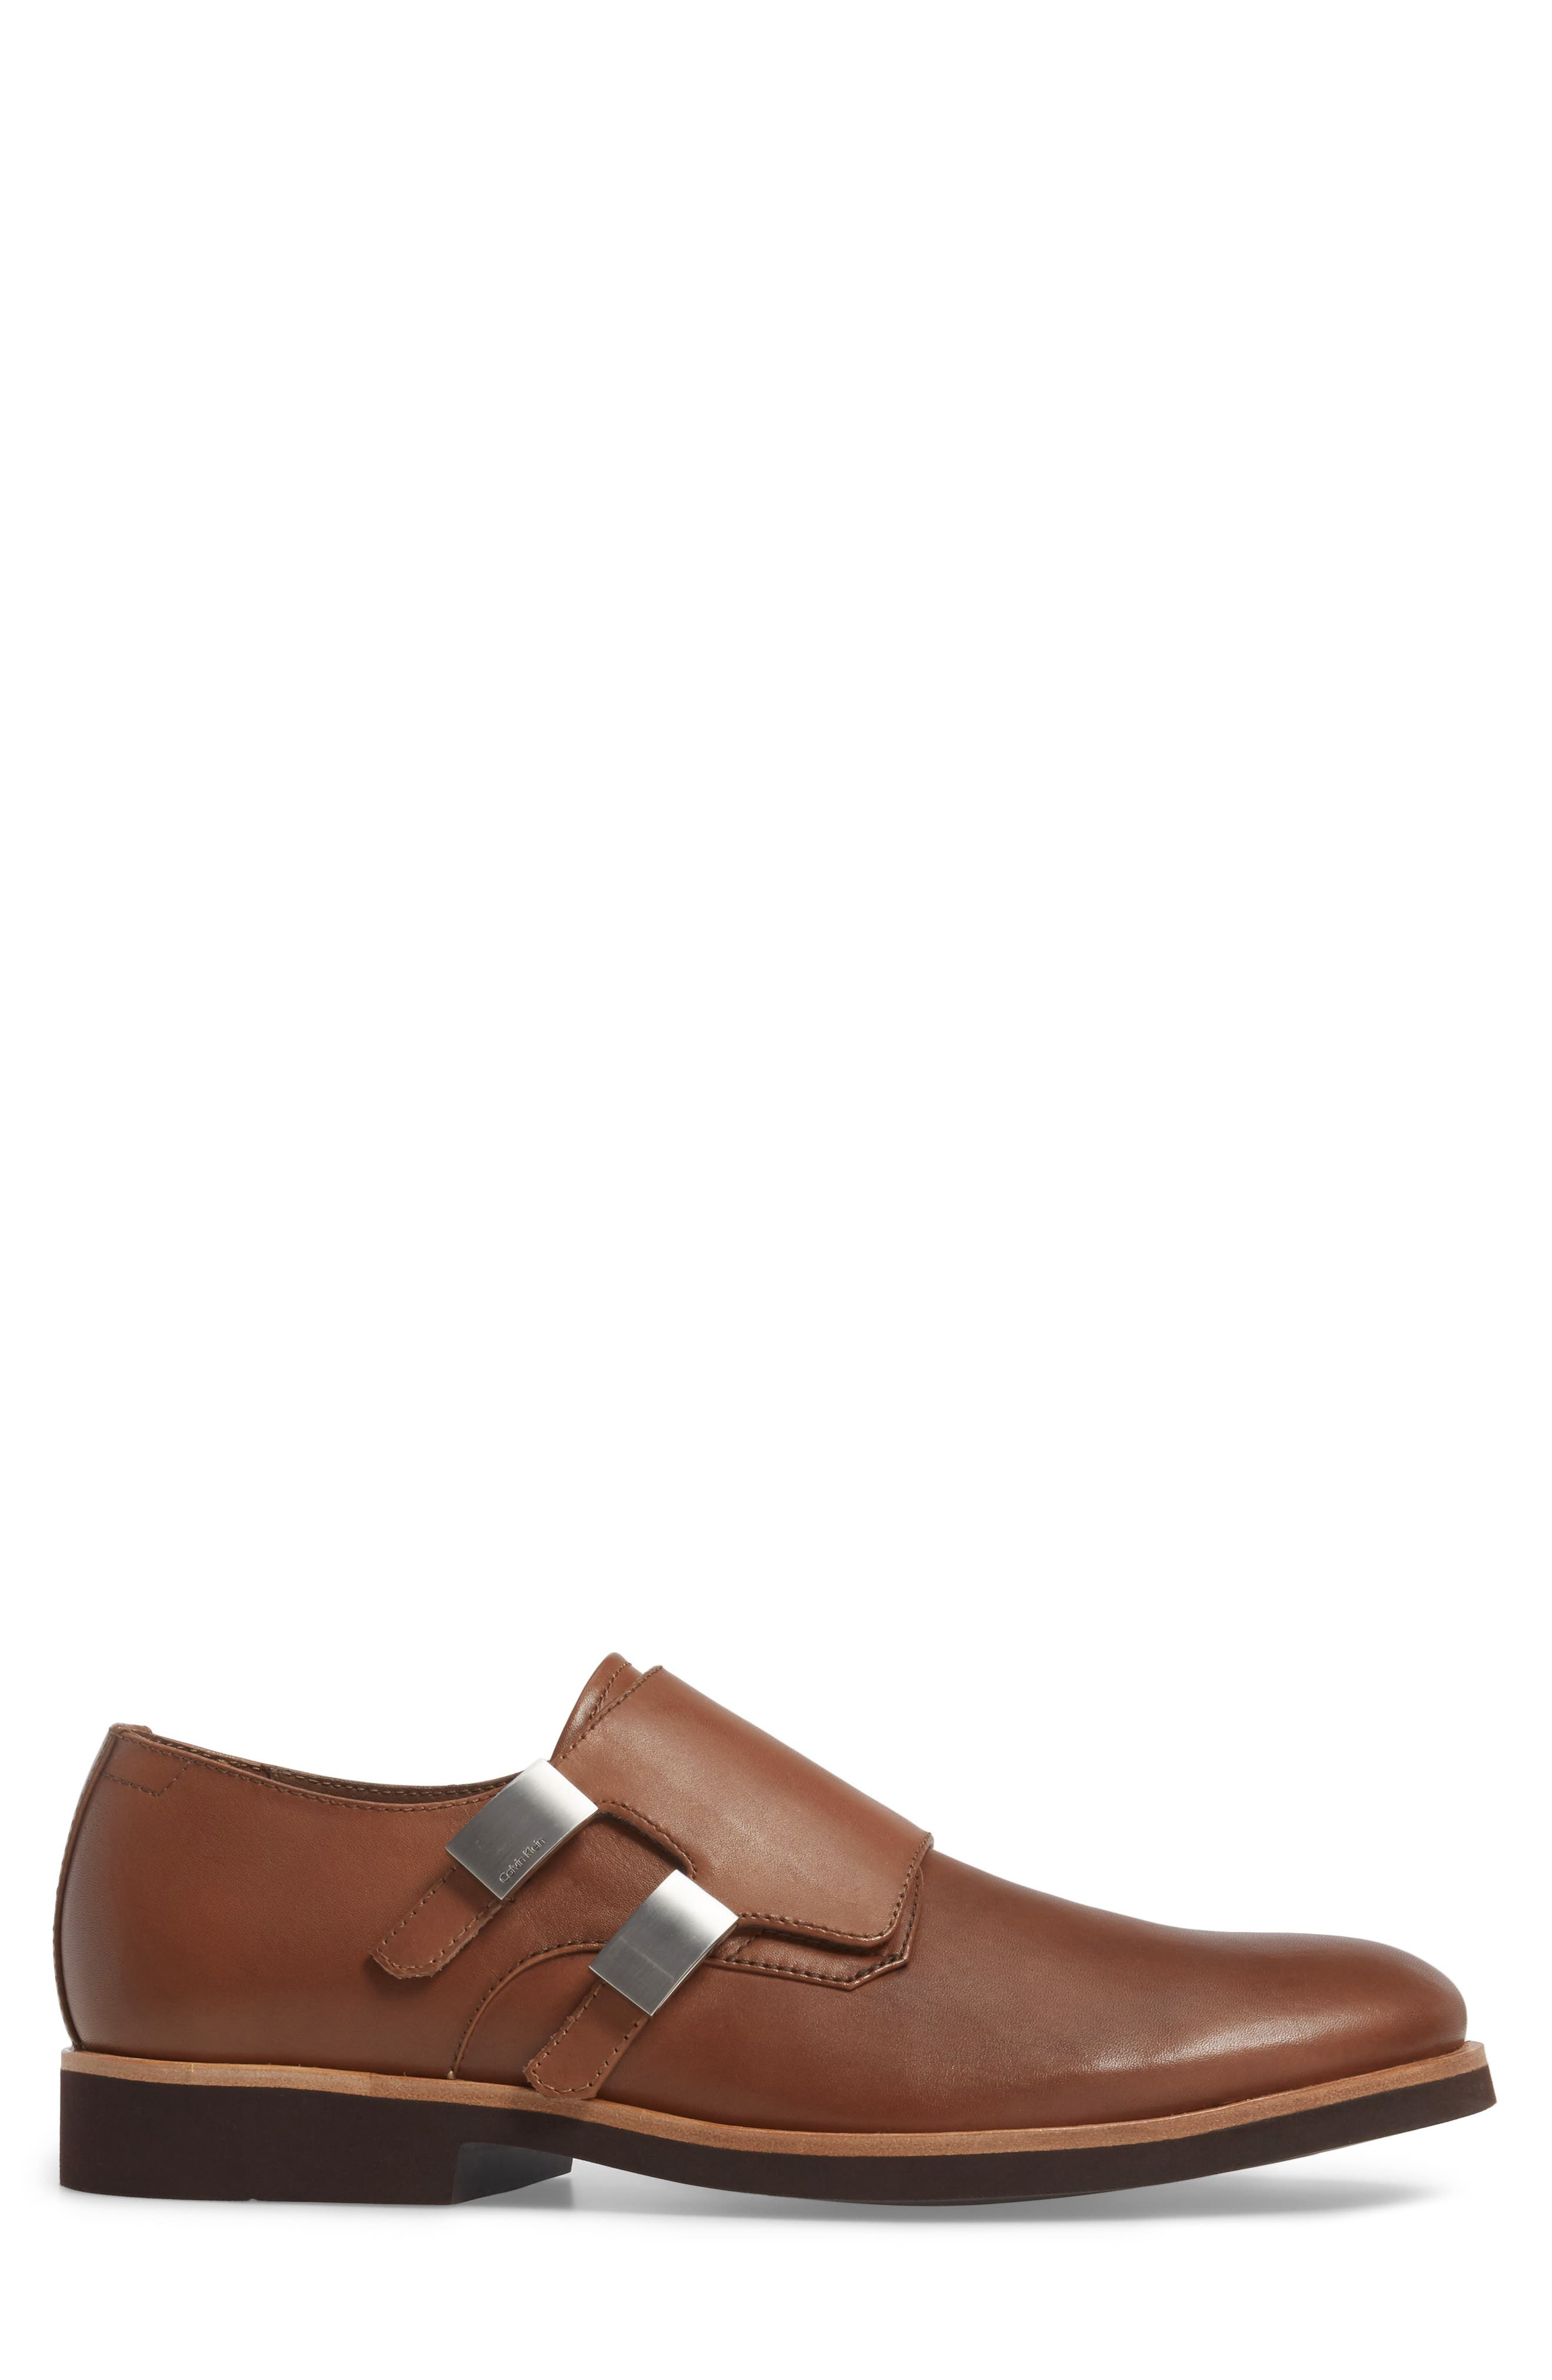 Finnegan Double Monk Strap Shoe,                             Alternate thumbnail 6, color,